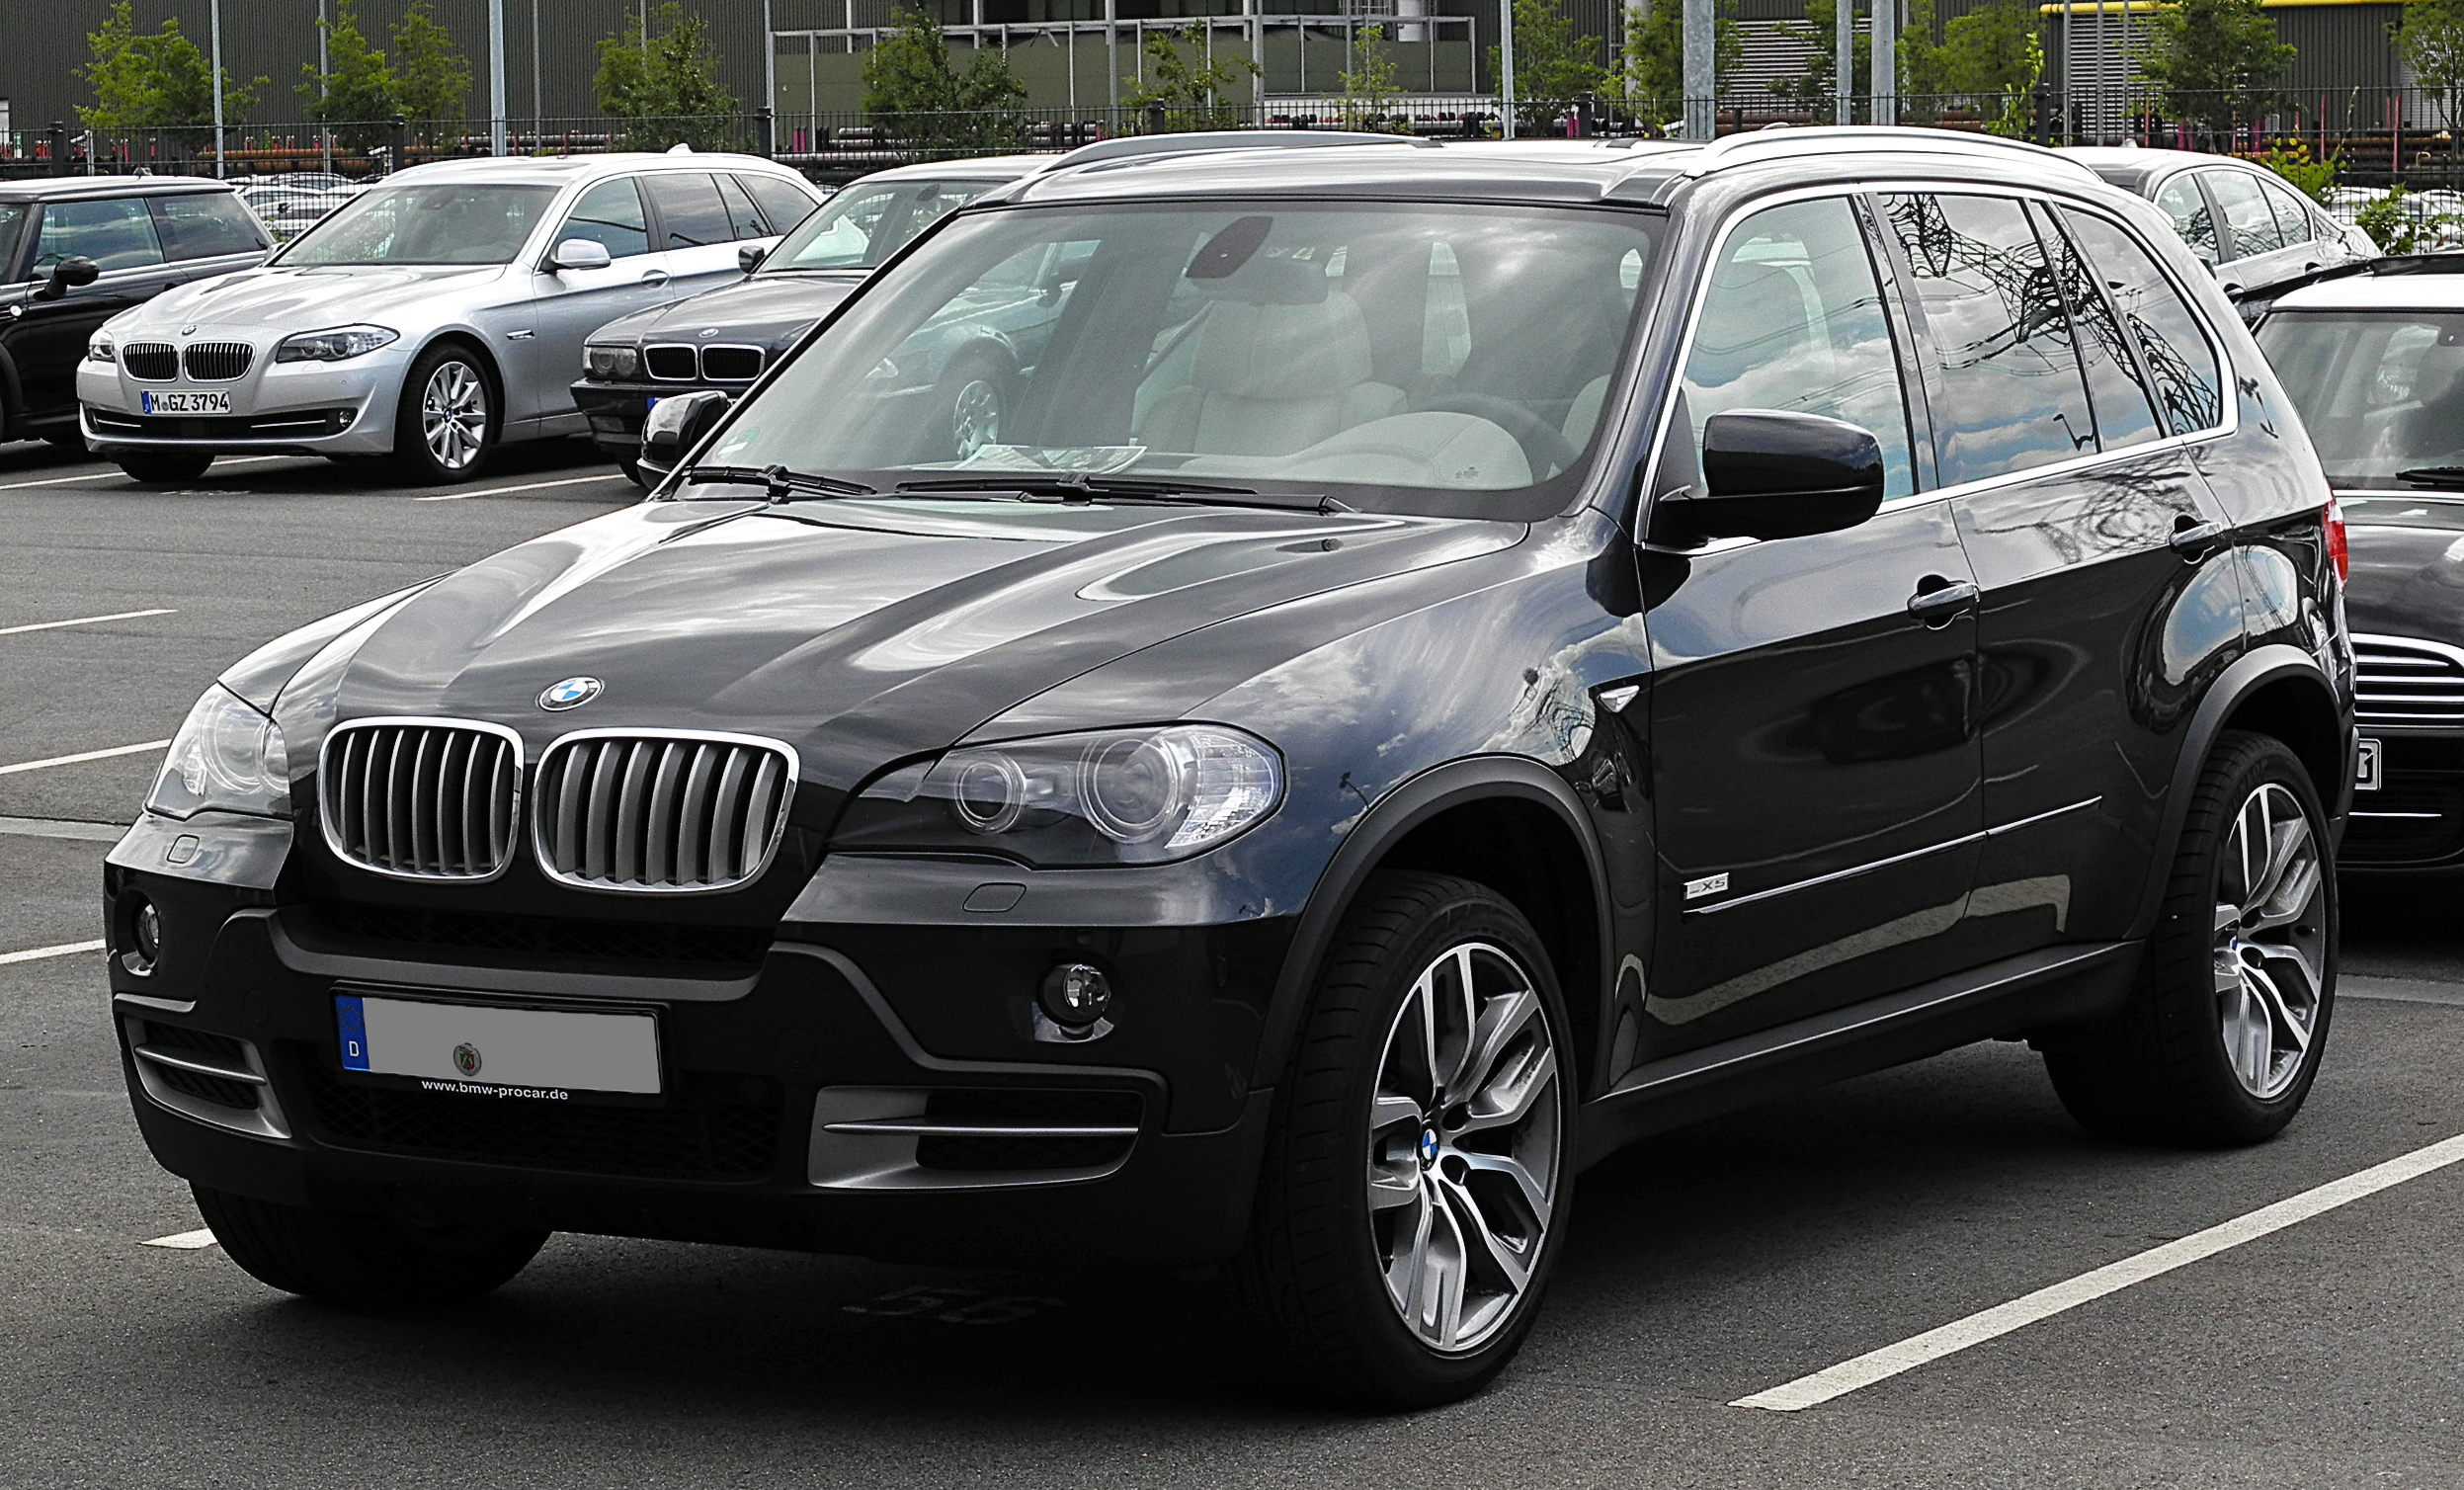 bmw x5 wallpaper #2